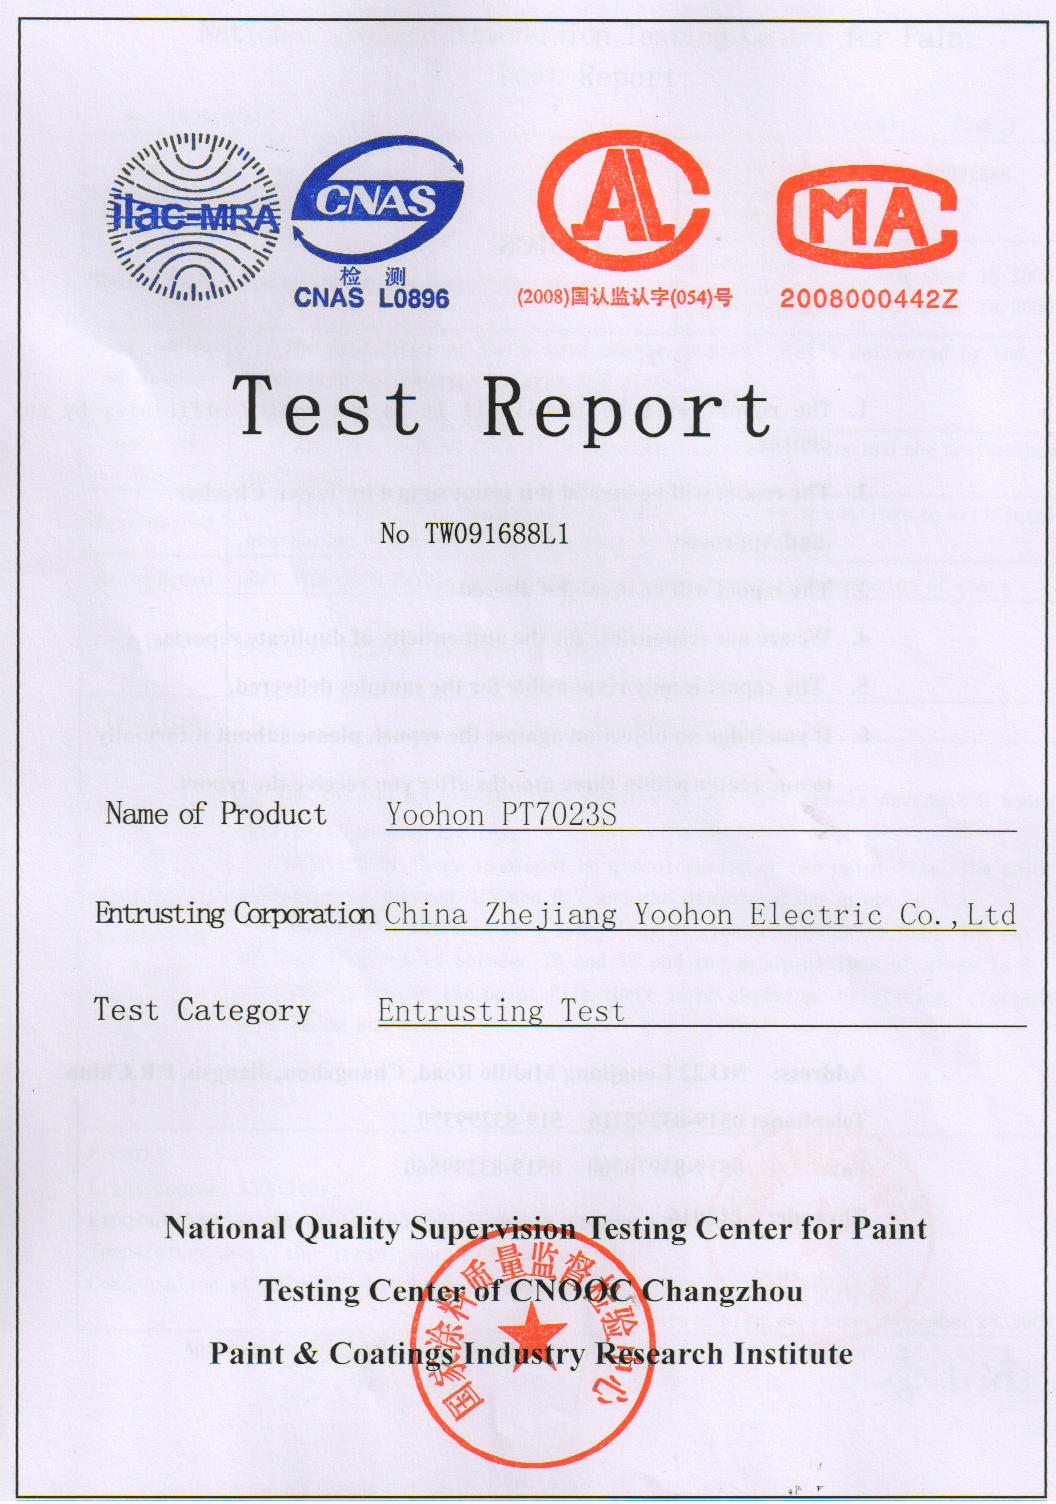 Yoohon Products Passed 480 Hours UV Test Report